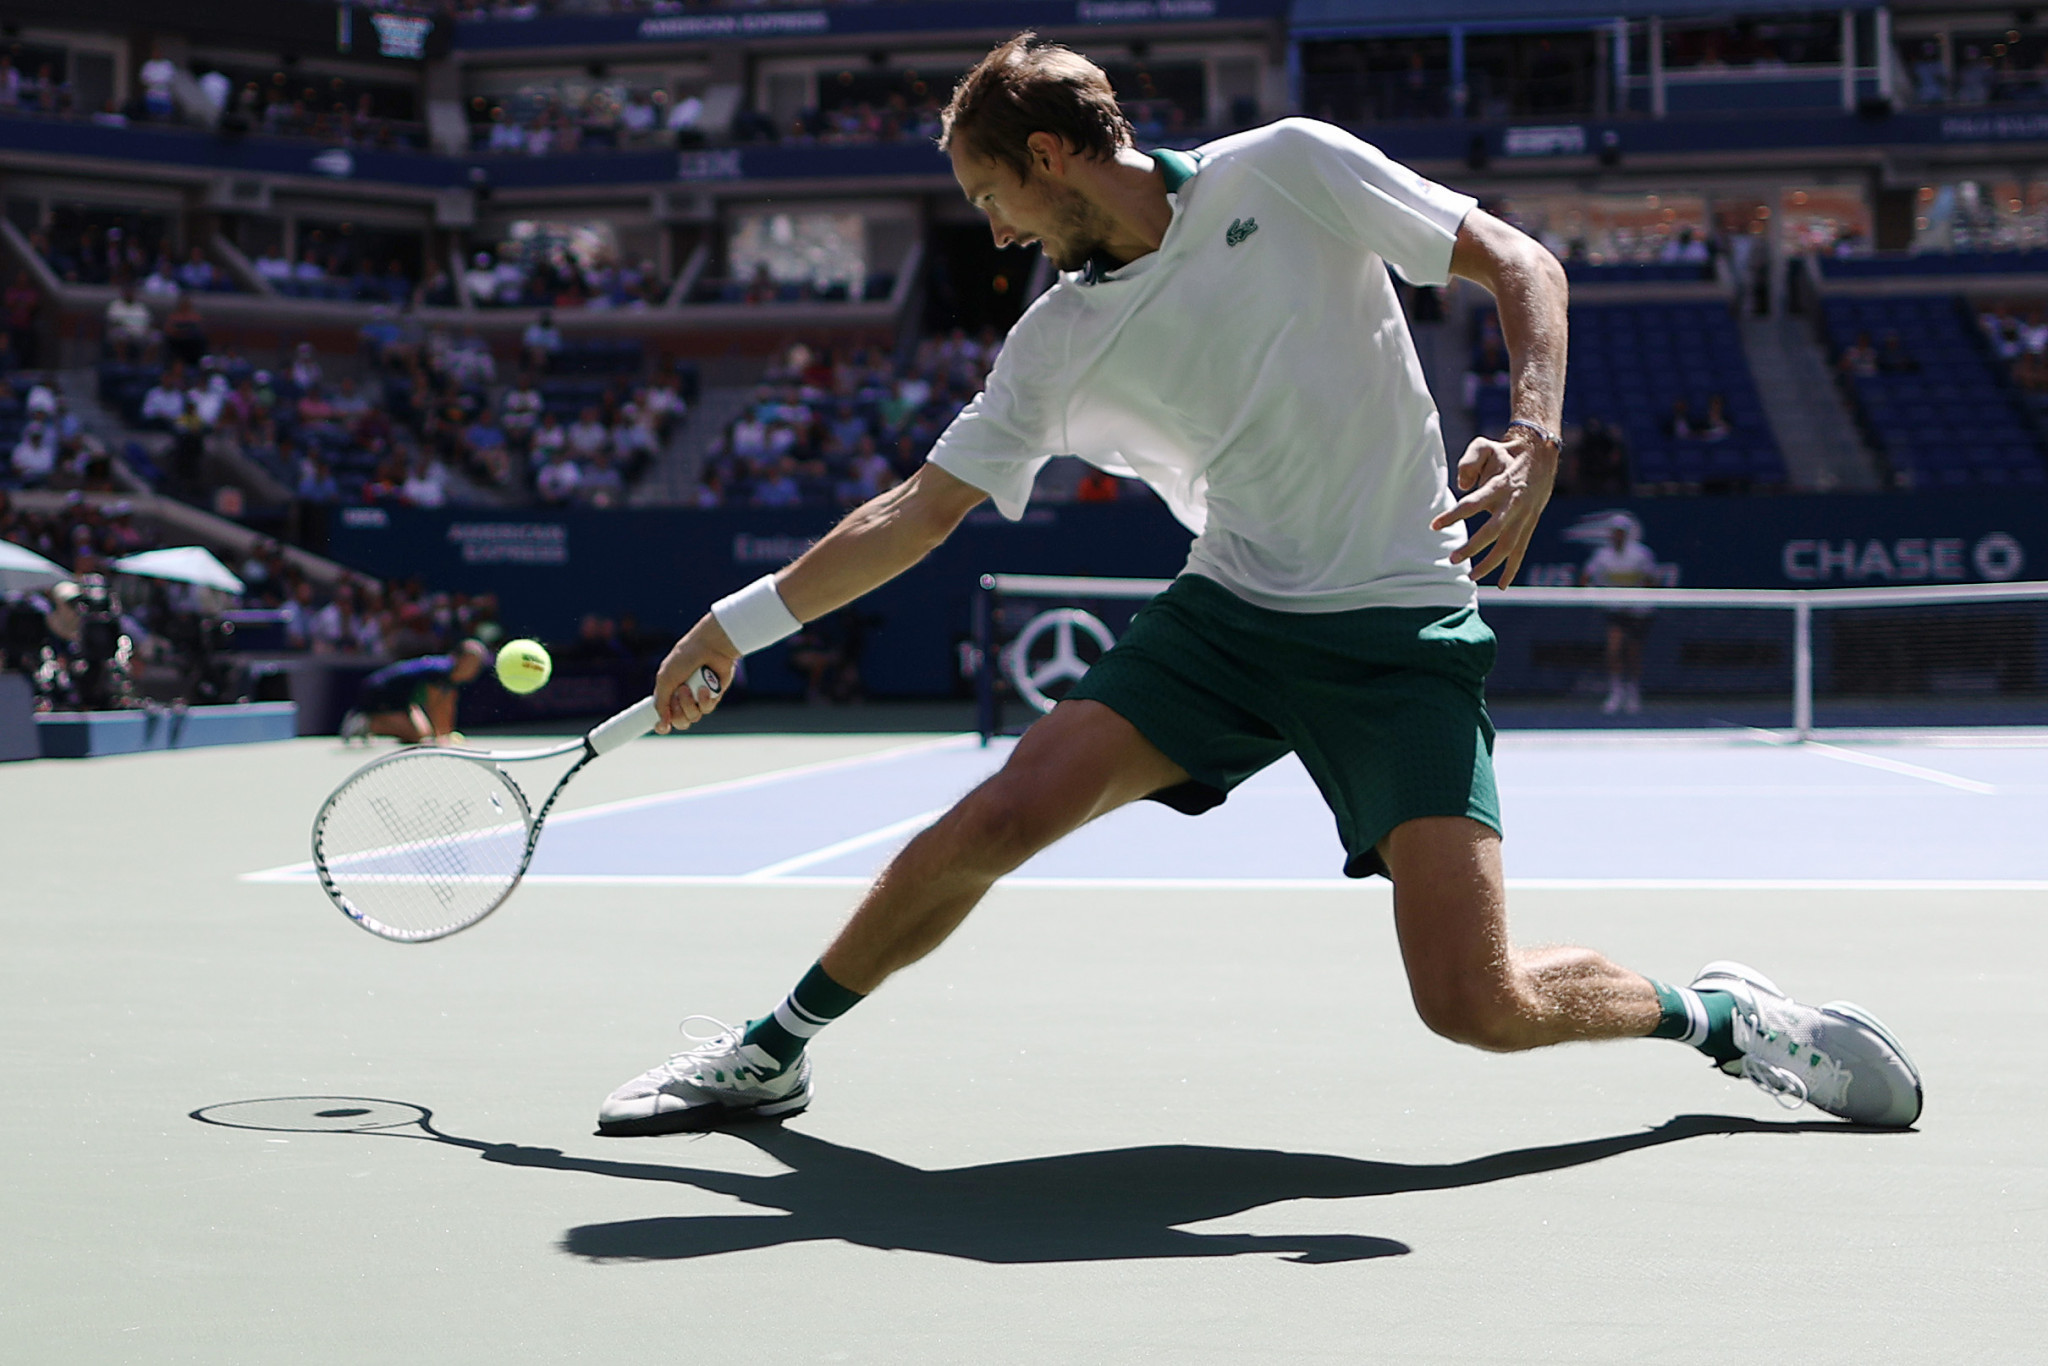 In the men's singles, Russian Daniil Medvedev is through to a third US Open semi-final in a row after a four-set win ©Getty Images